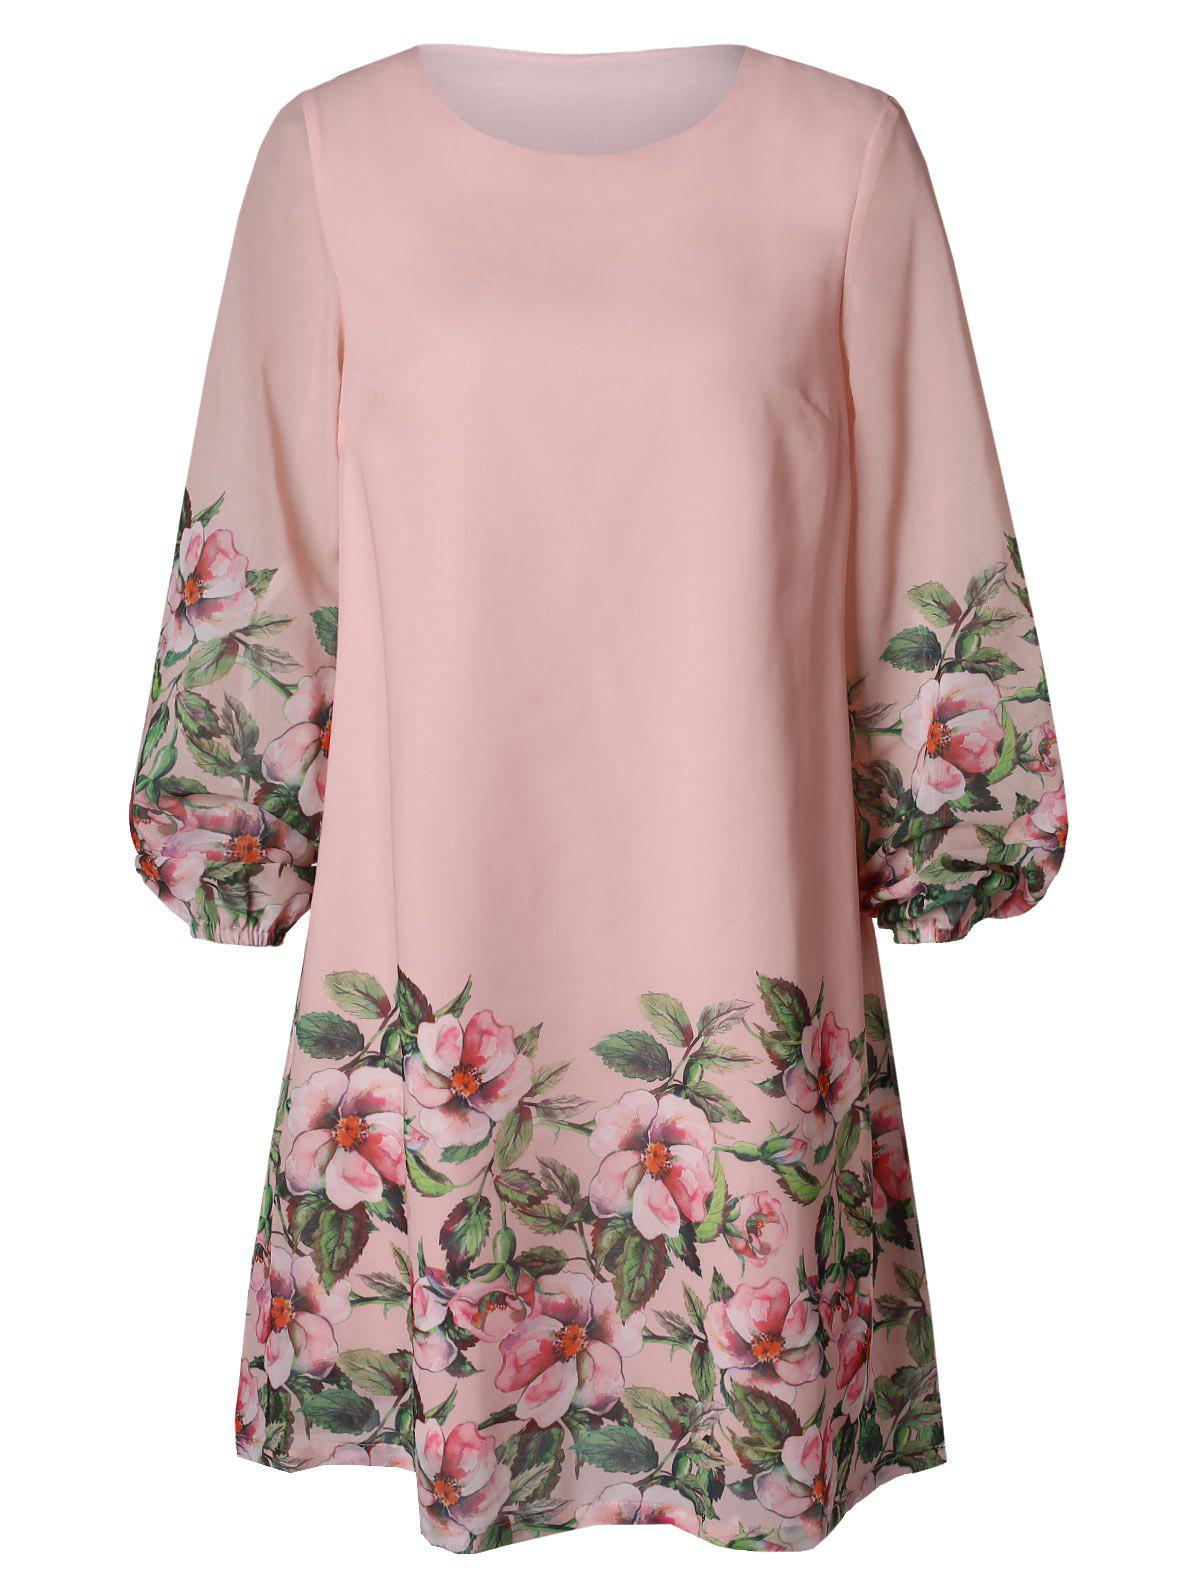 Floral Print Puff Sleeve Dress - LIGHT PINK M